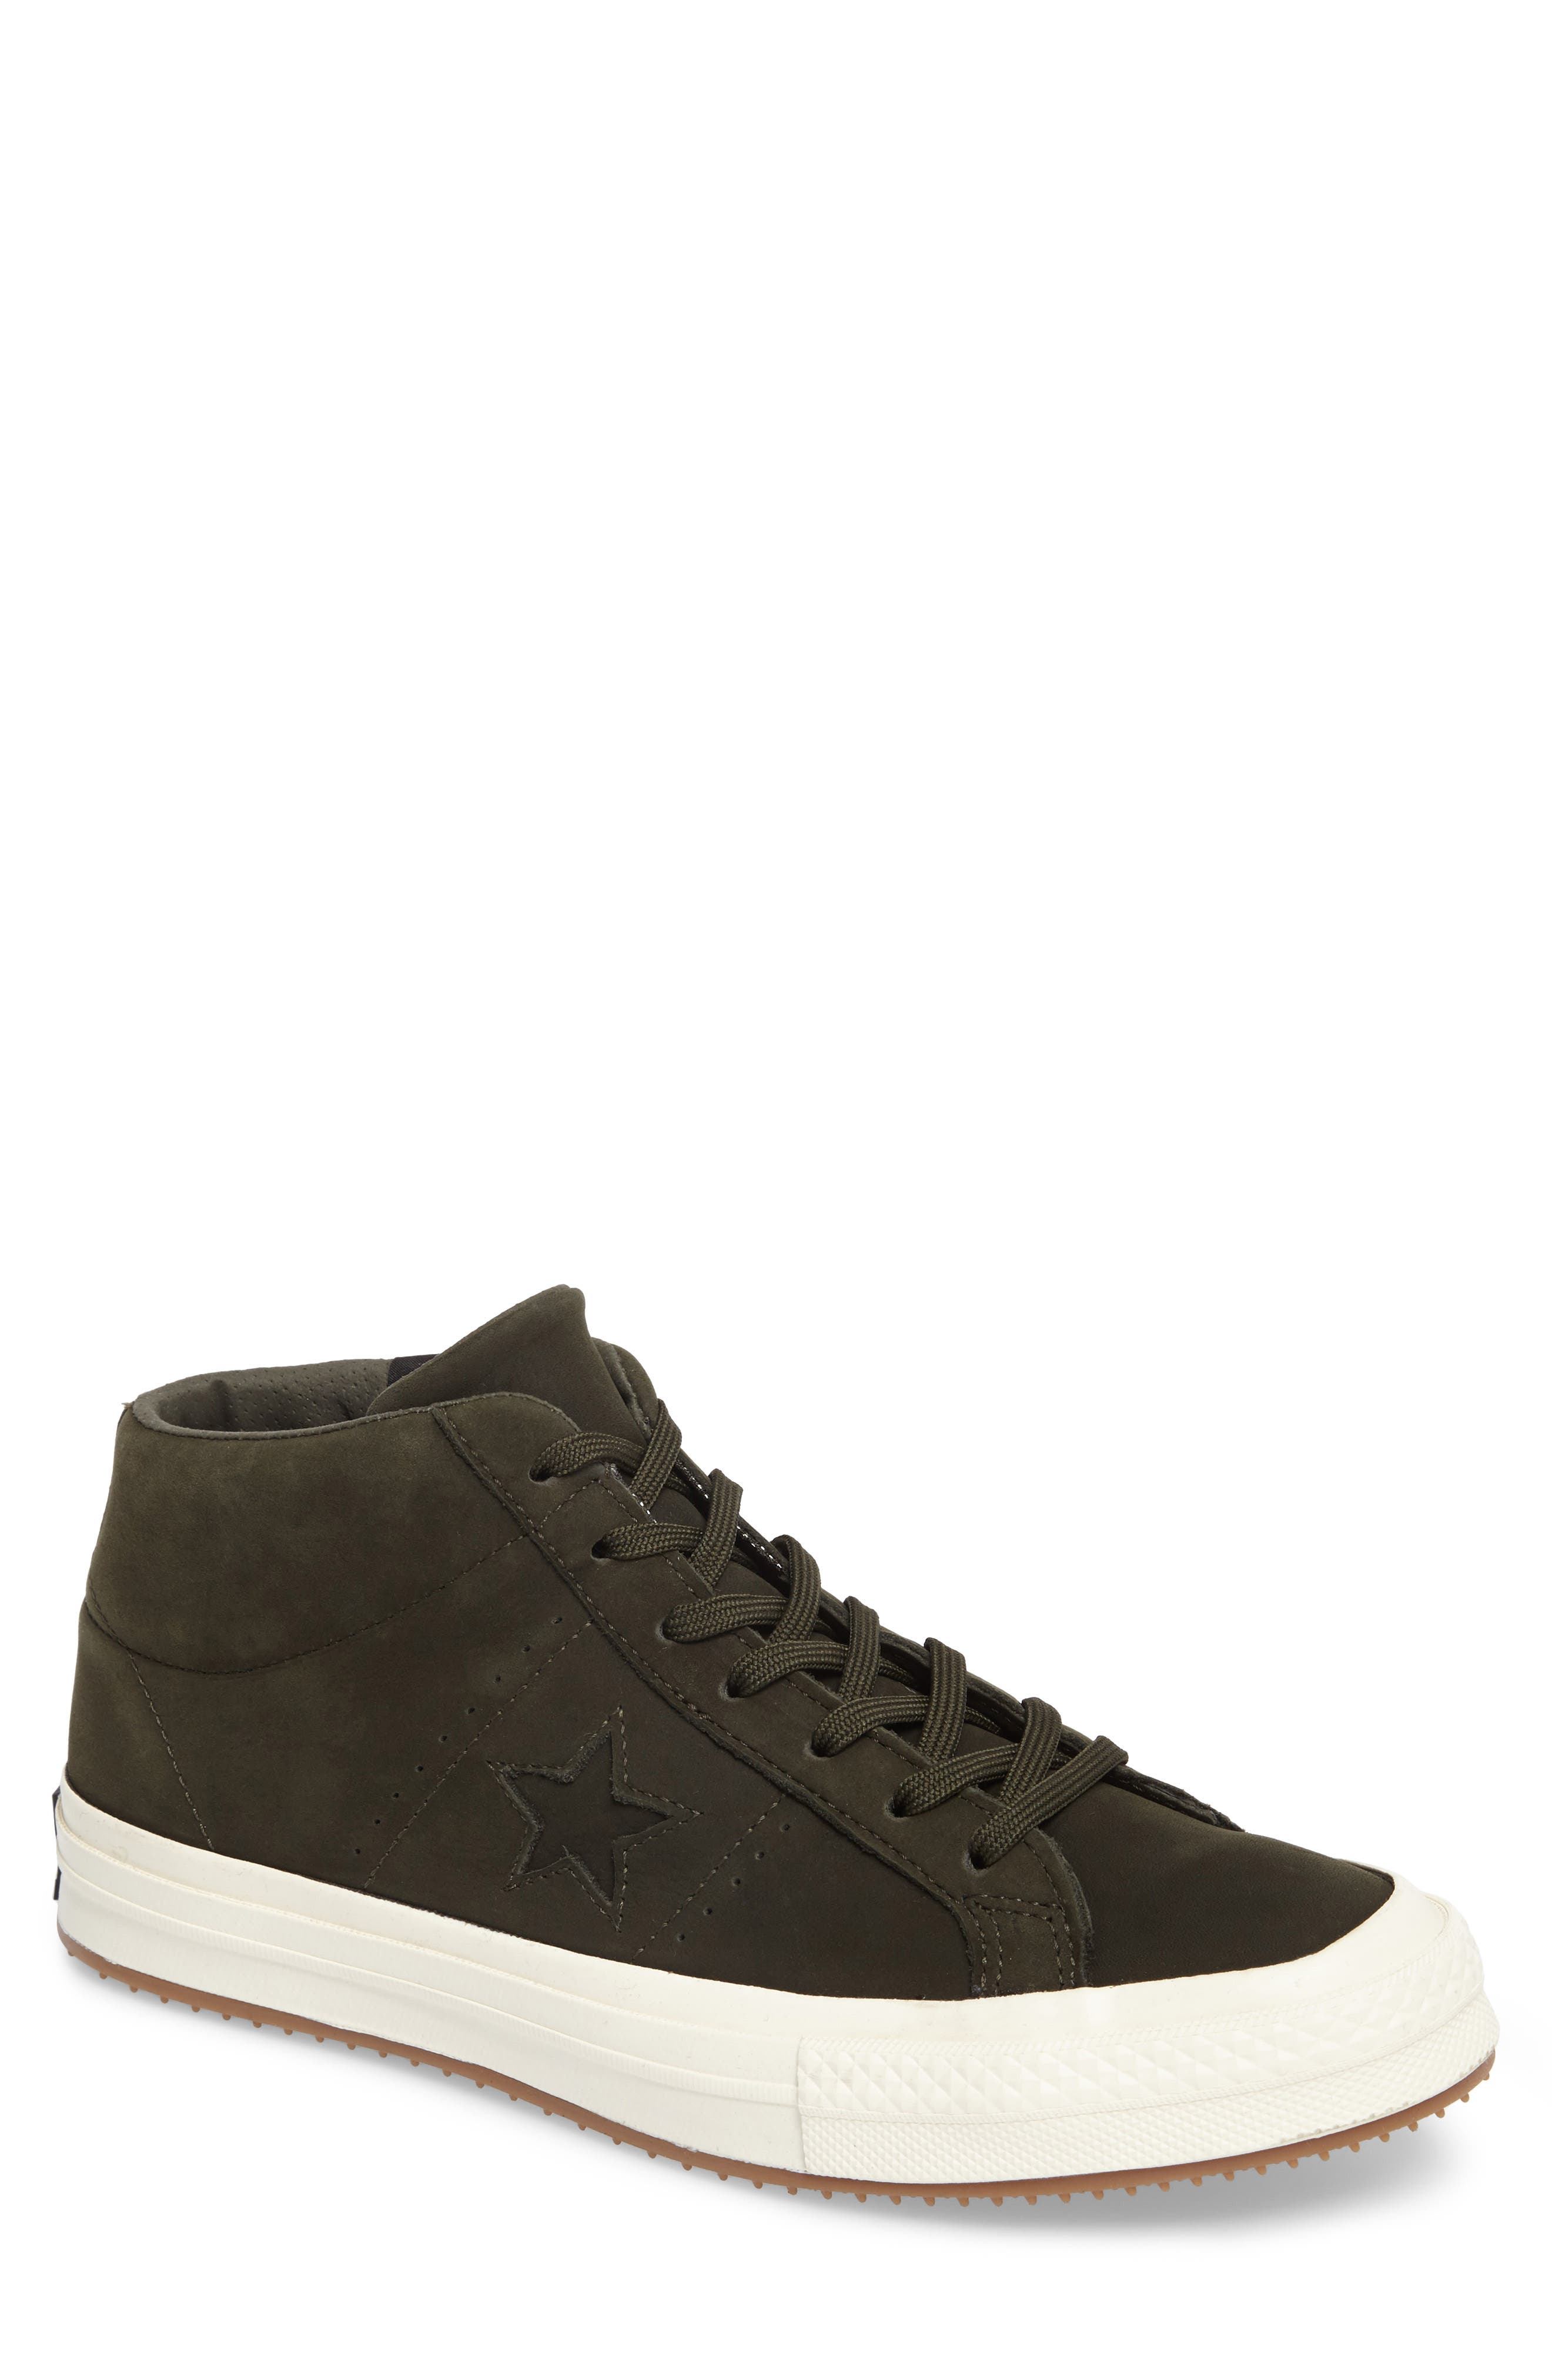 Converse One Star Mid Sneaker (Men)